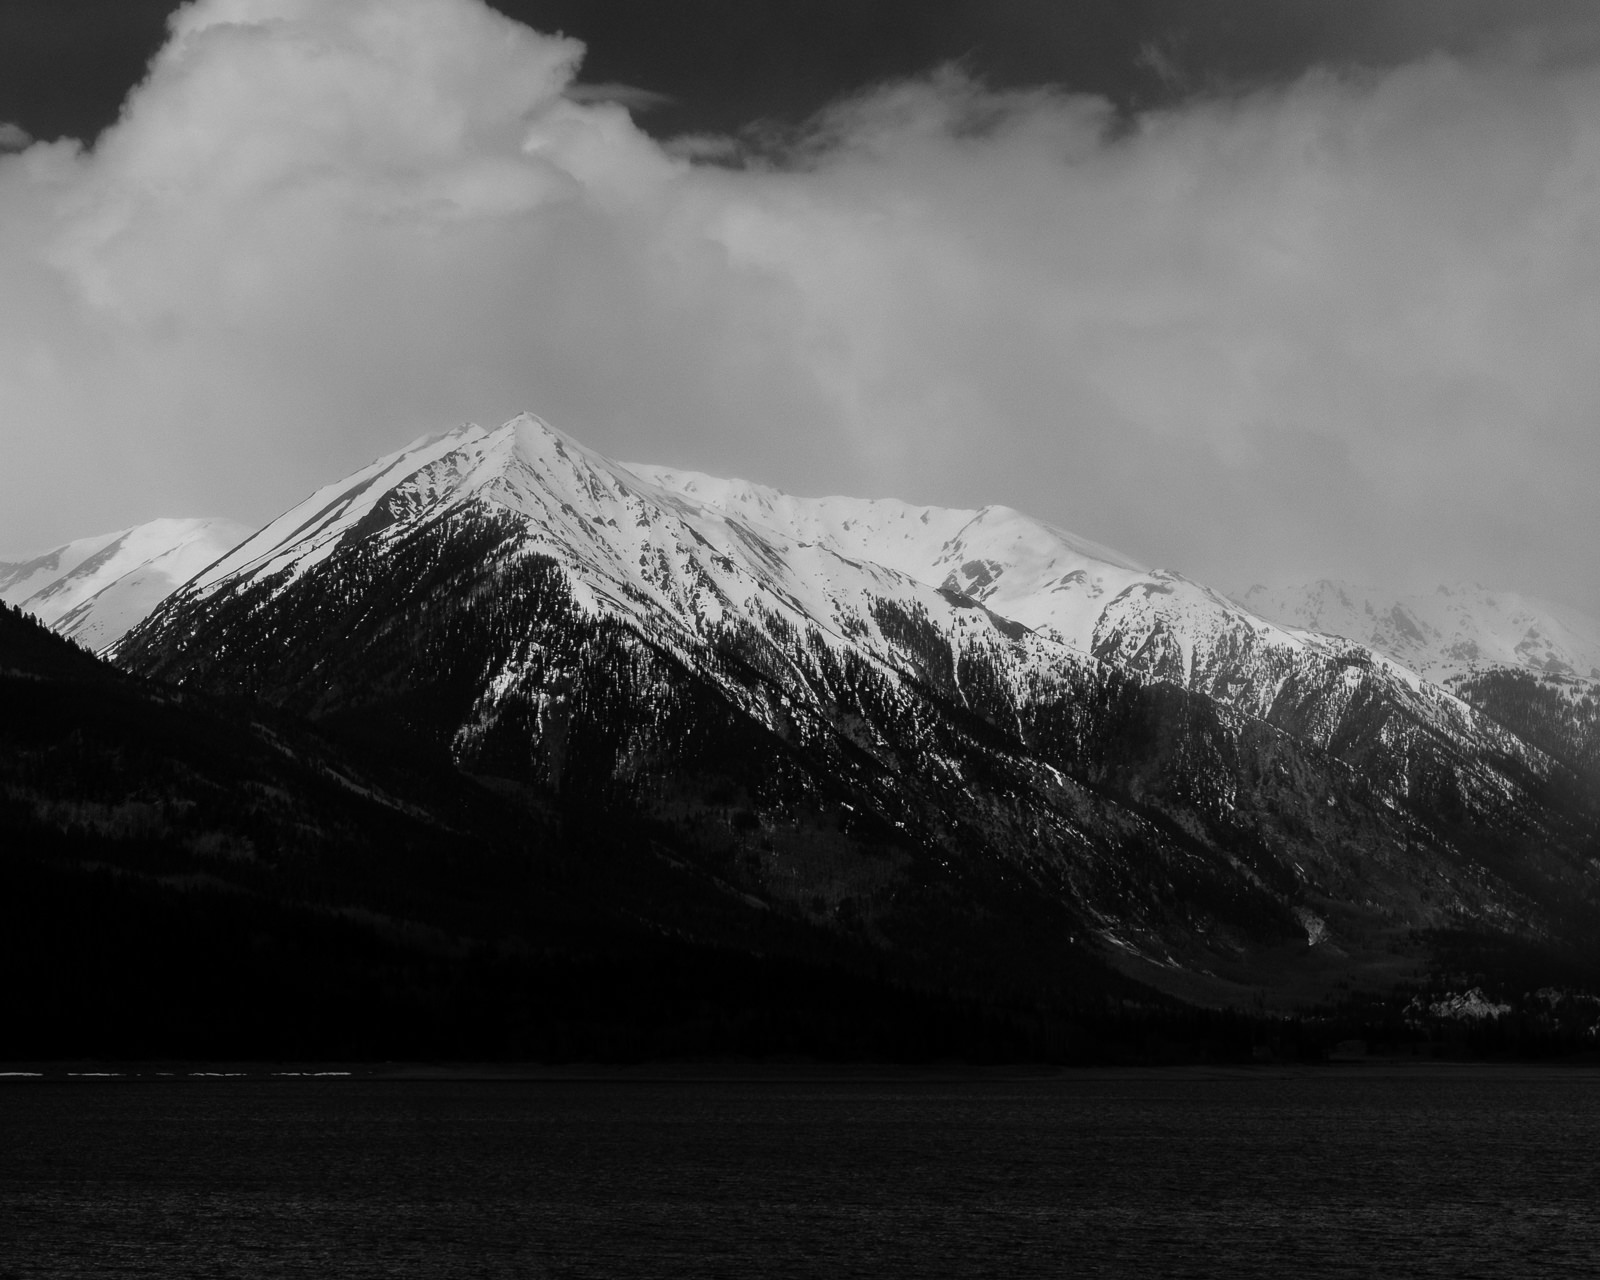 Day 144- 365 Day B&W Photo Challenge - A view of Mt. Elbert from Twin Lakes near Leadville, Colorado - Fuji X-T3, XF 50-140mm f/2.8, Acros R Film Simulation